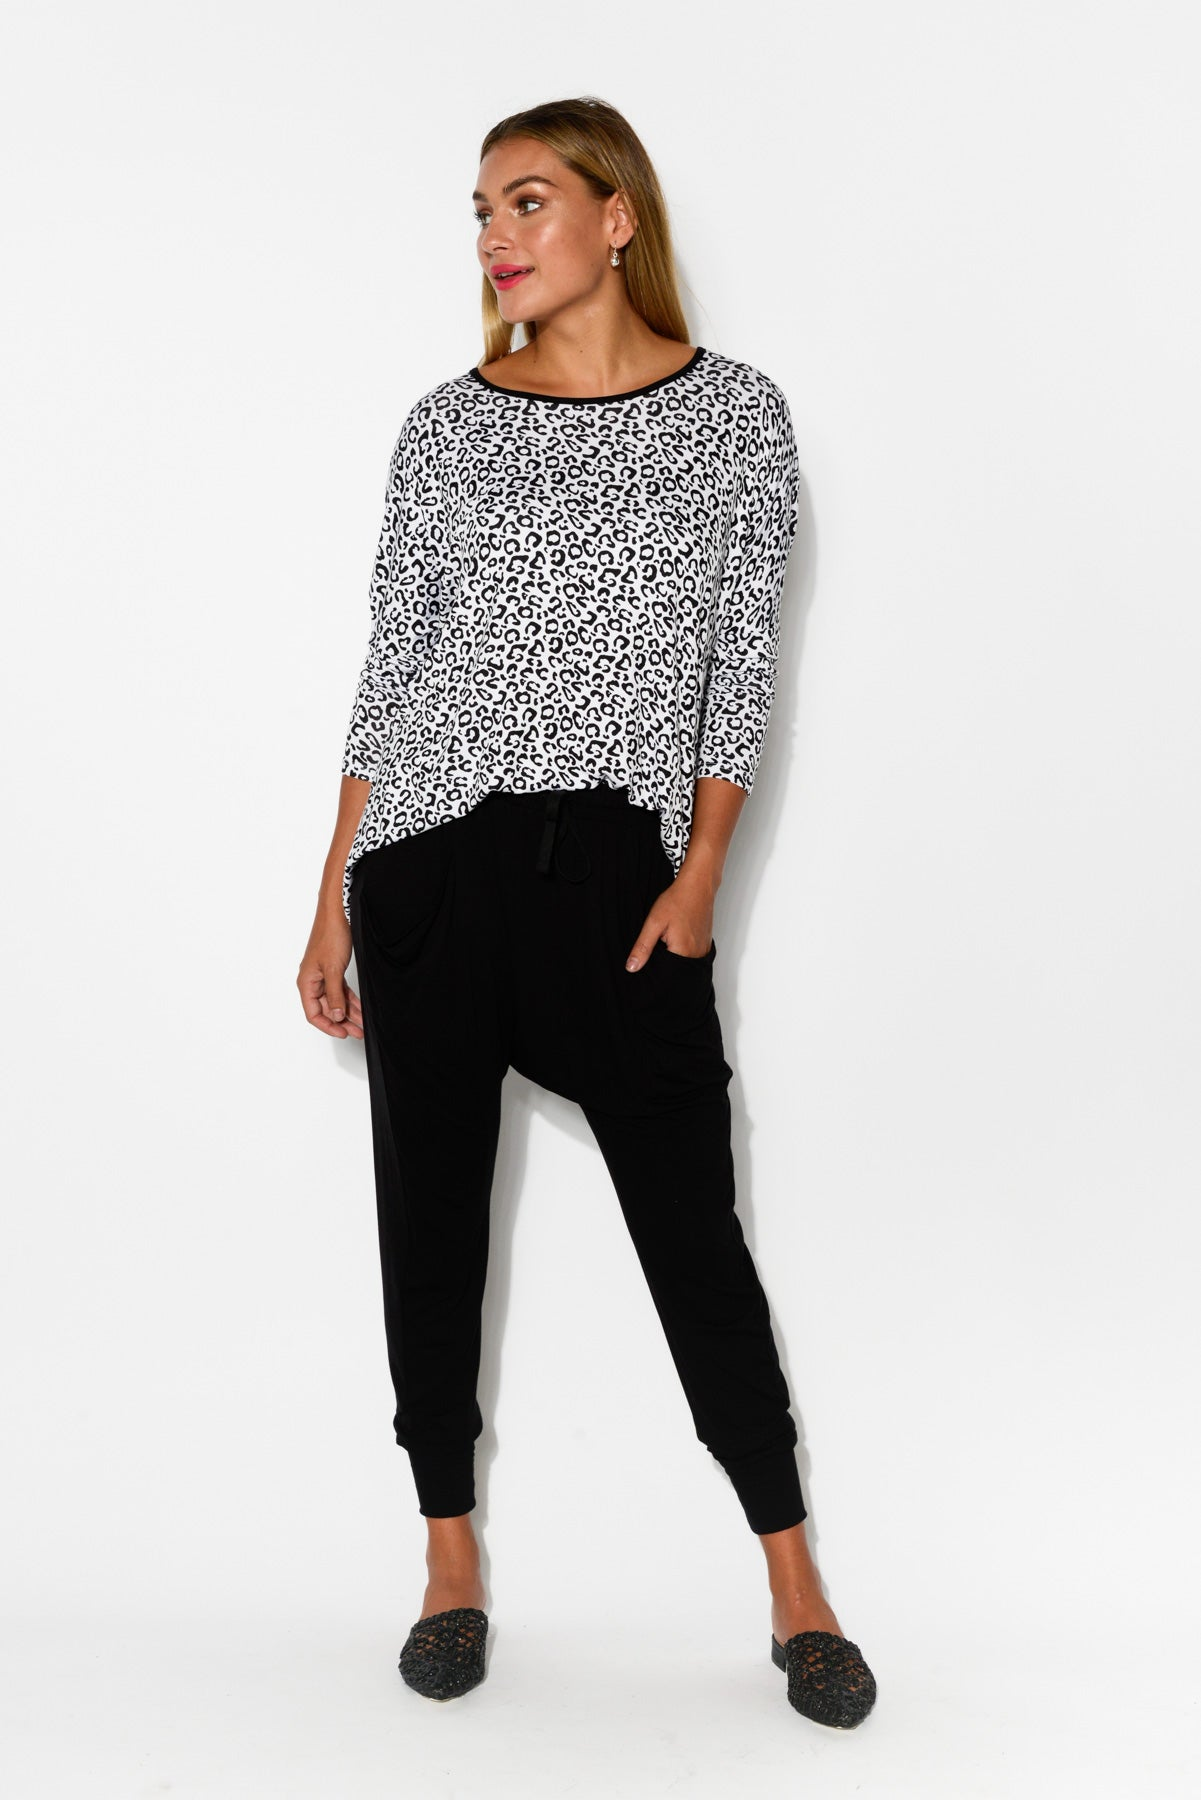 White Leopard Milan 3/4 Sleeve Top - Blue Bungalow